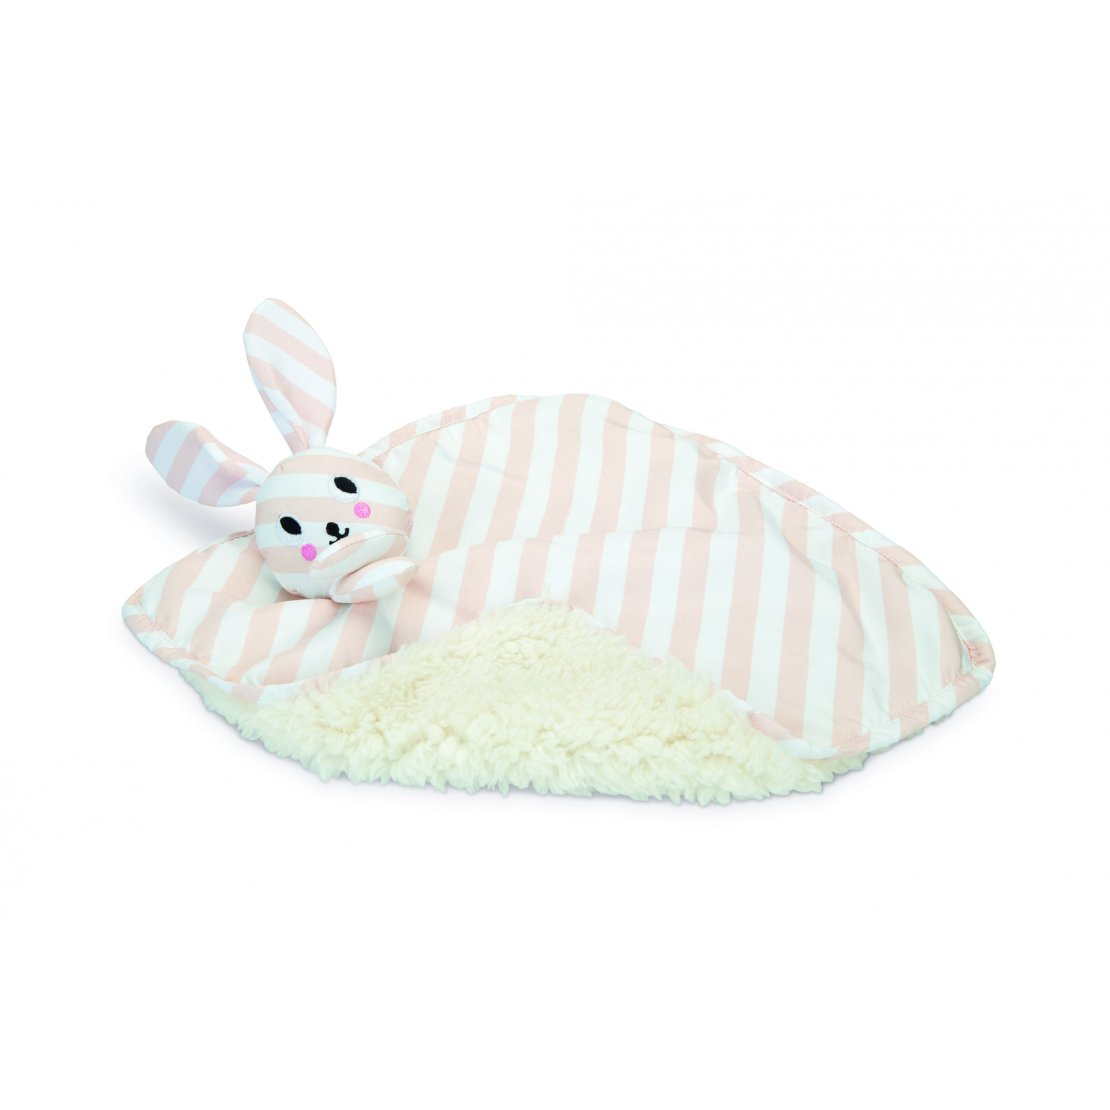 Beeztees Puppy Cuddle Cloth - Pica's Pets